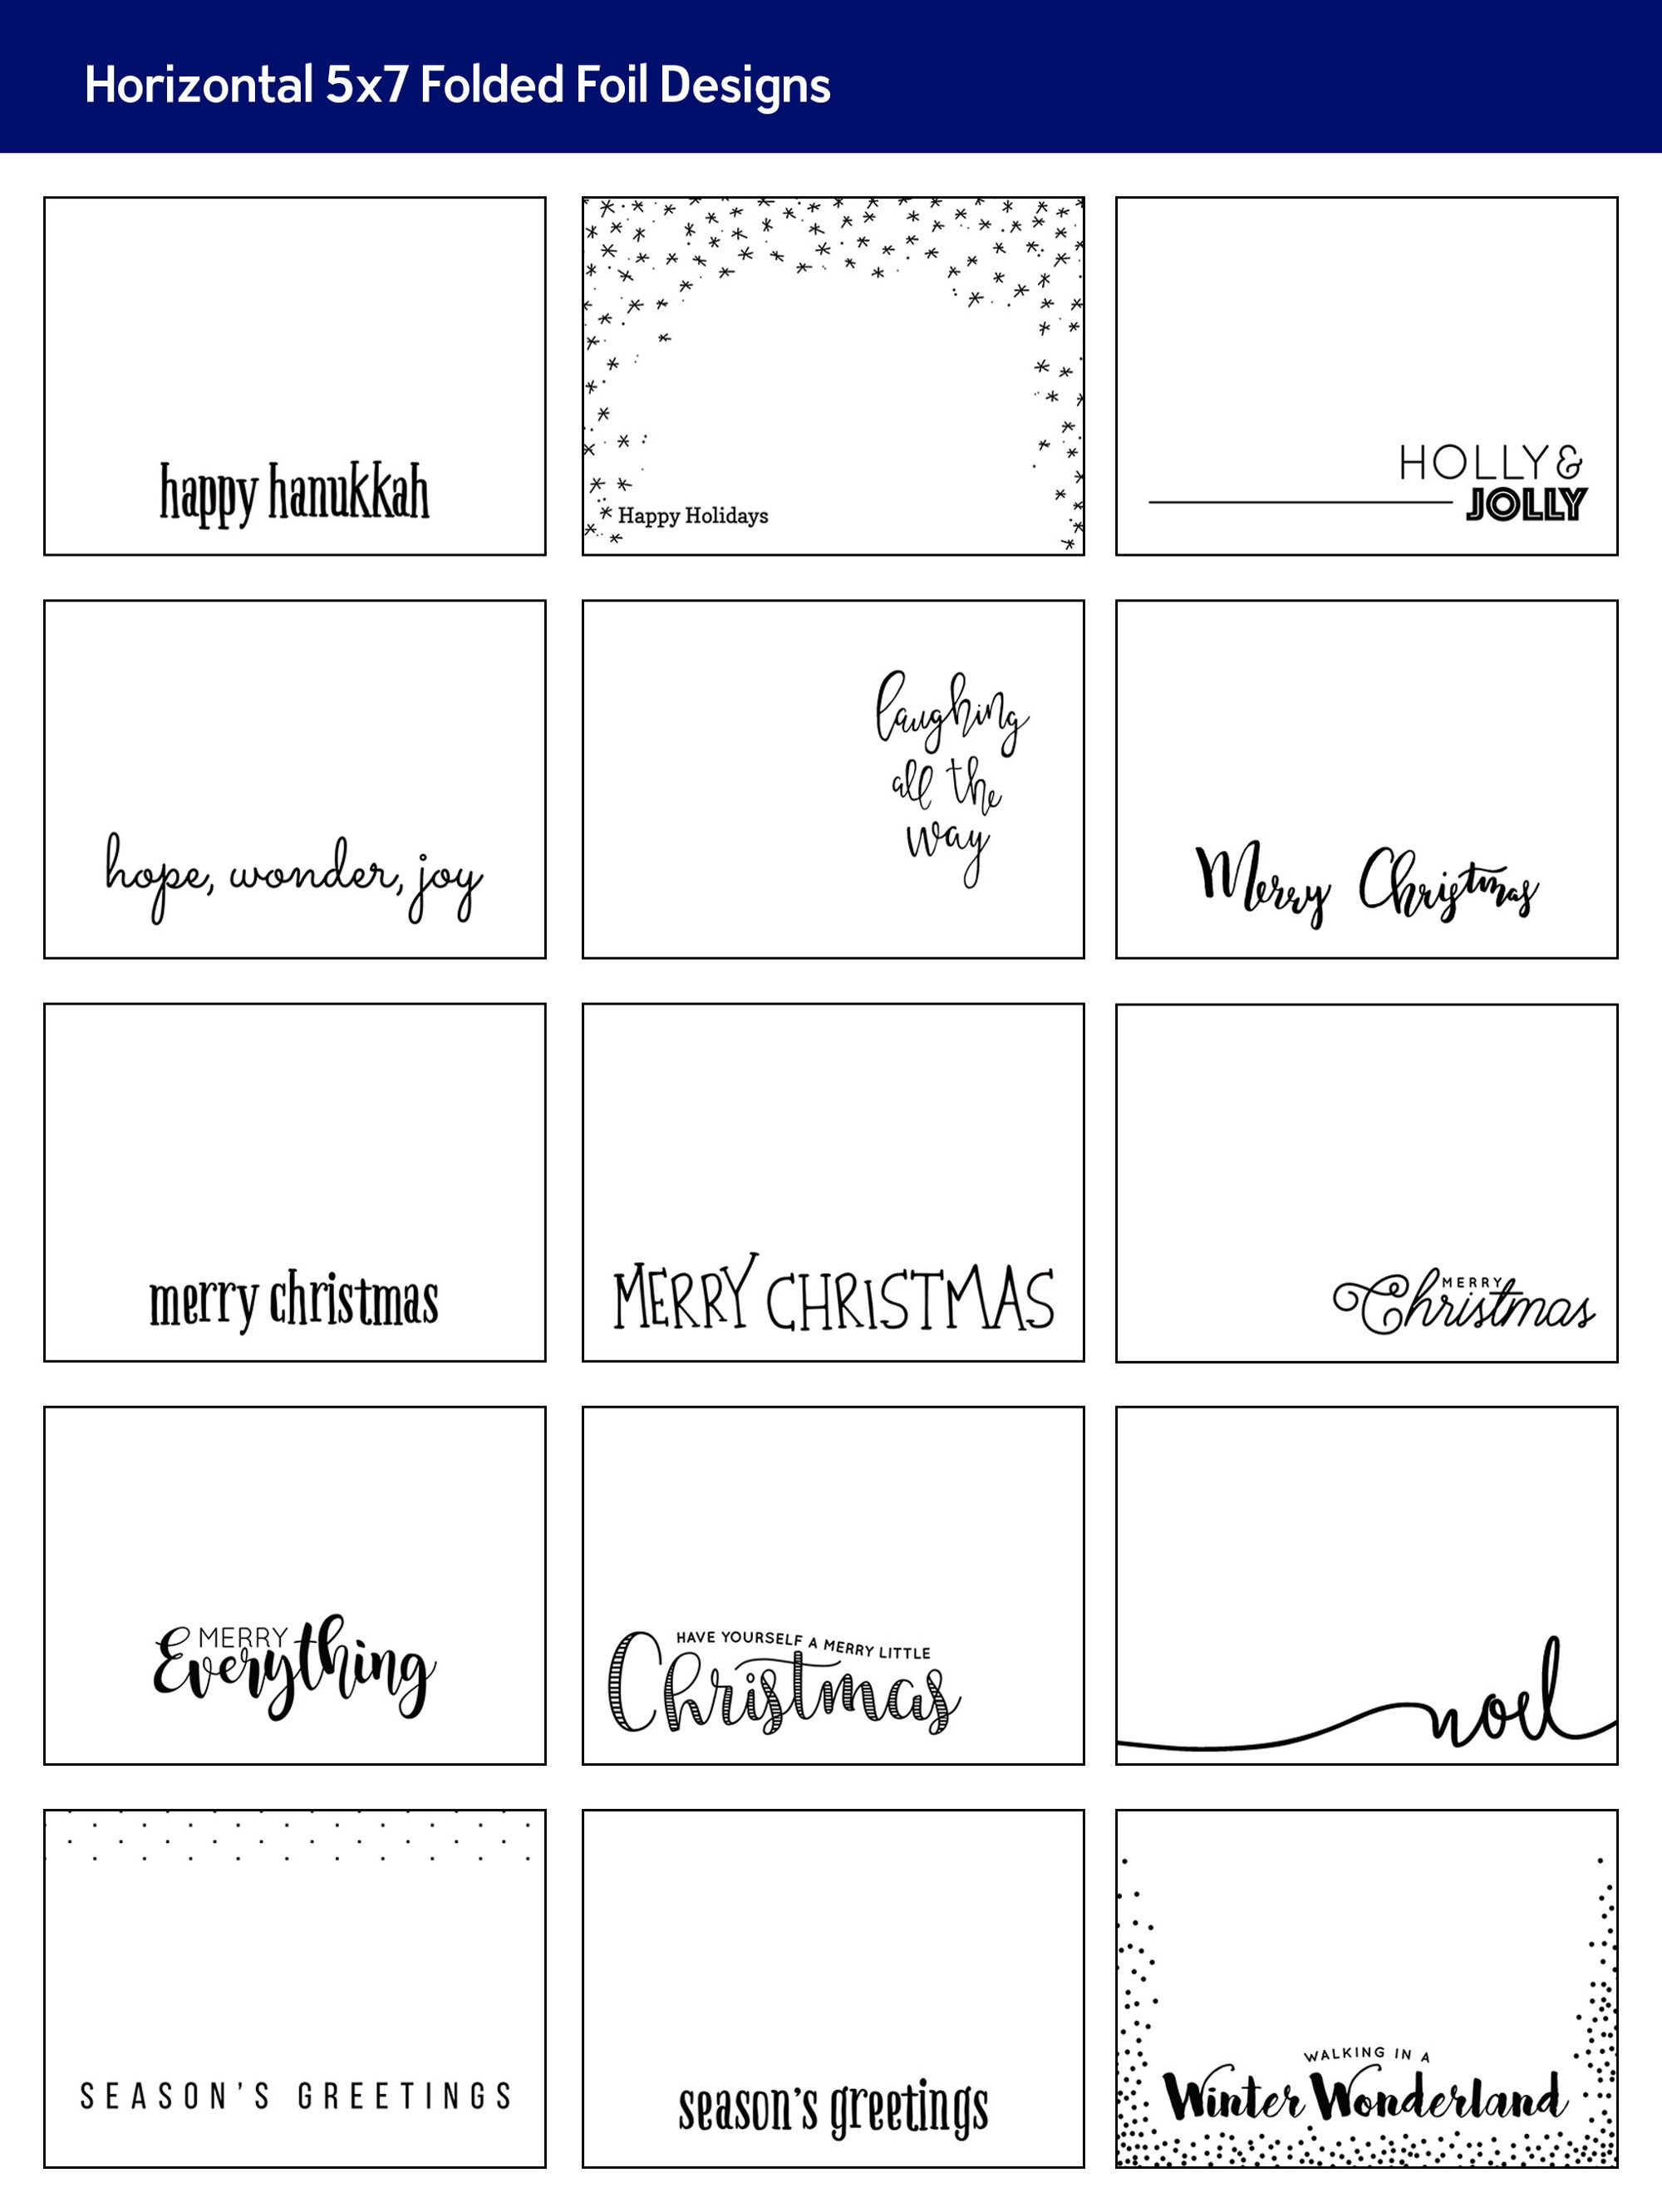 Introducing Foil to Folded and Trifold Cards + New Holiday Designs